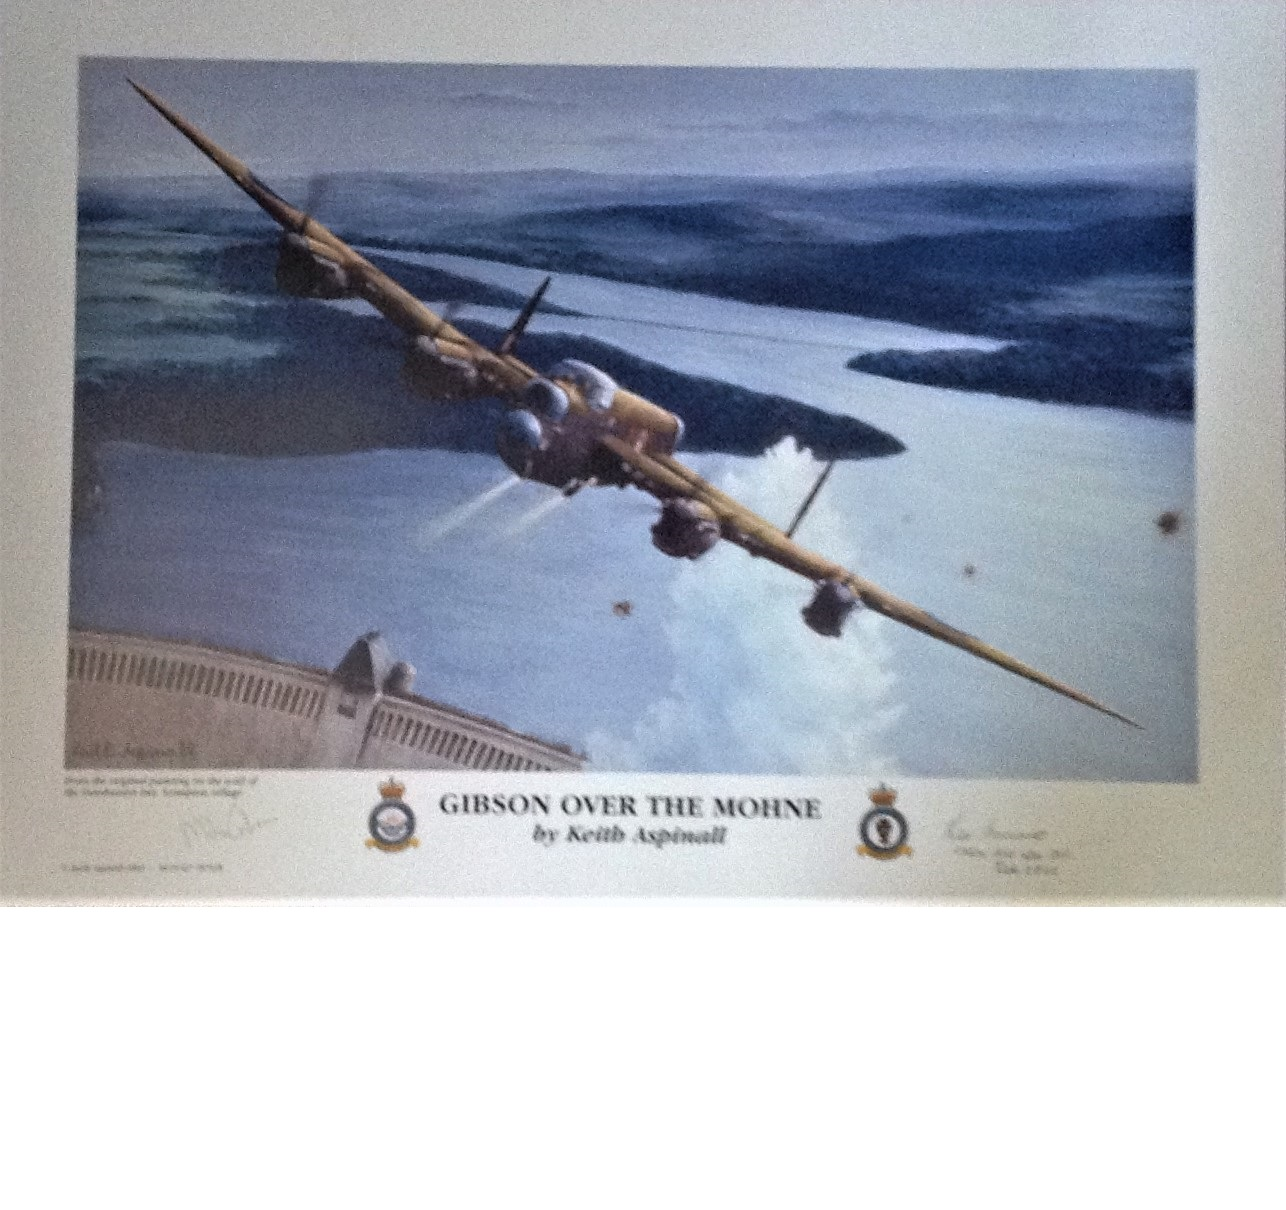 Lot 58 - Dambuster World War Two print 24x18 titled by the artist Keith Aspinall titled Gibson Over the Mohne